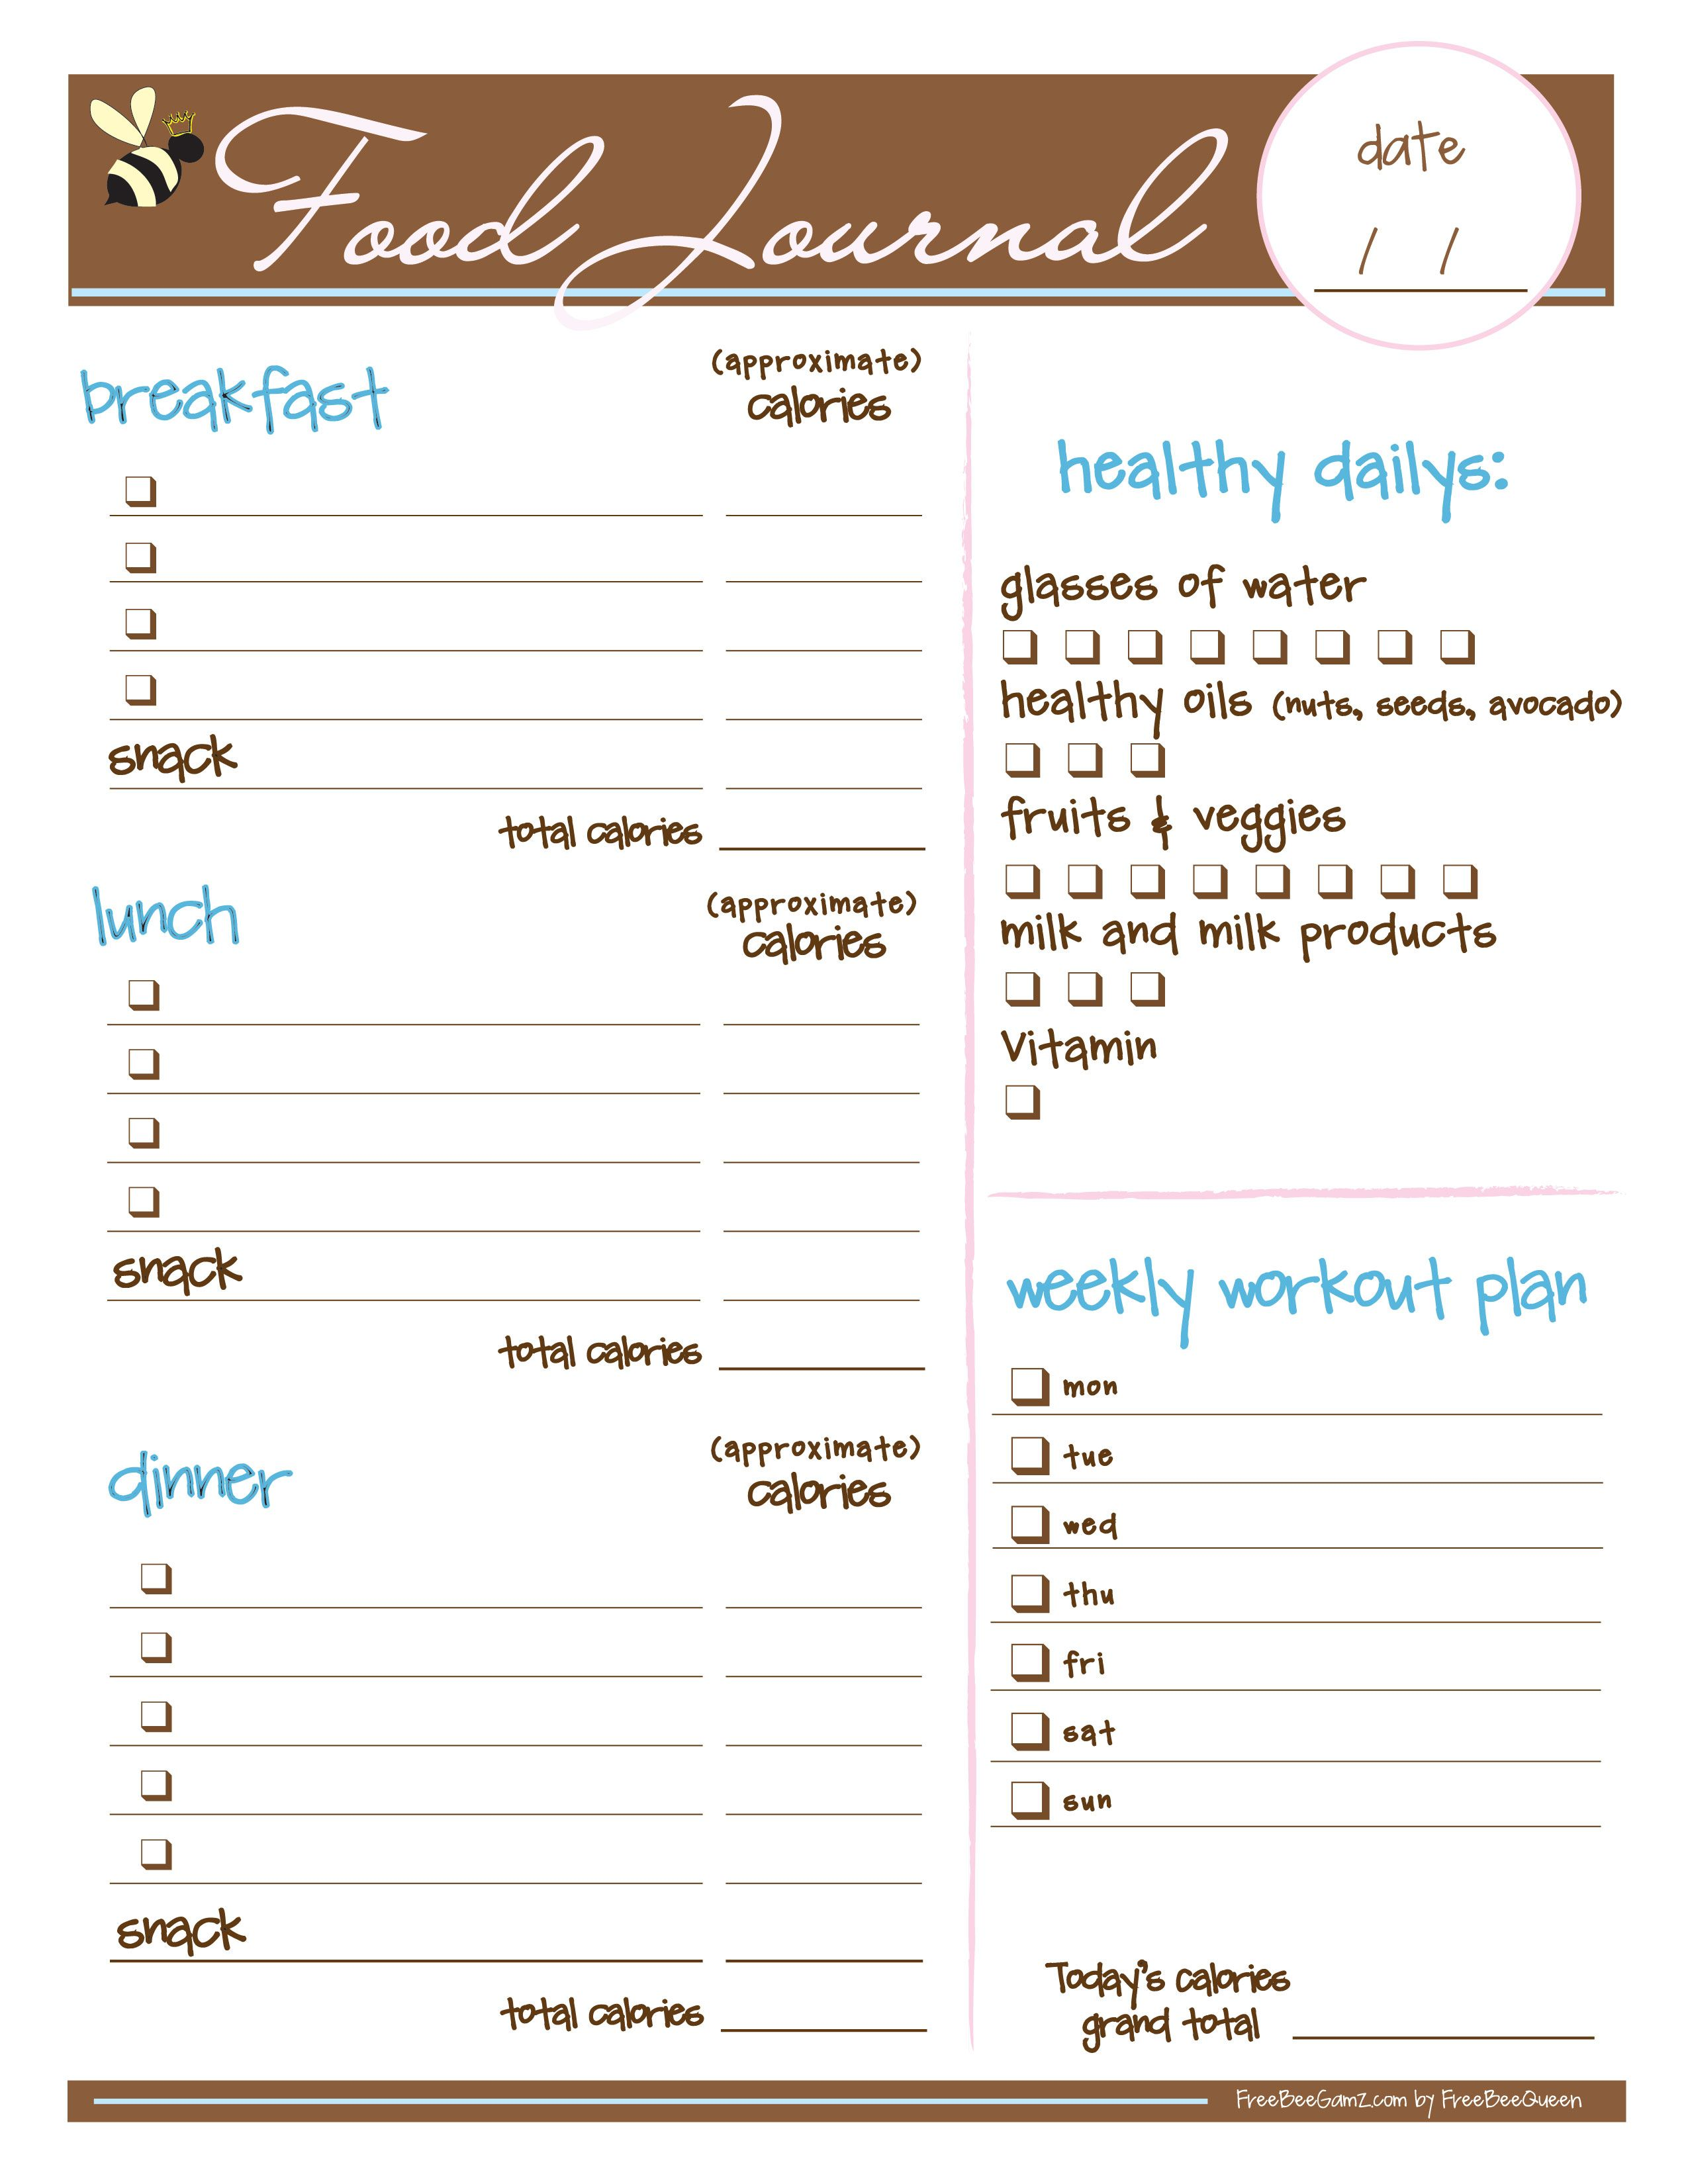 Free Food Journal I Love This I Just Printed It And It Looks Like It Is Going To Be A Big